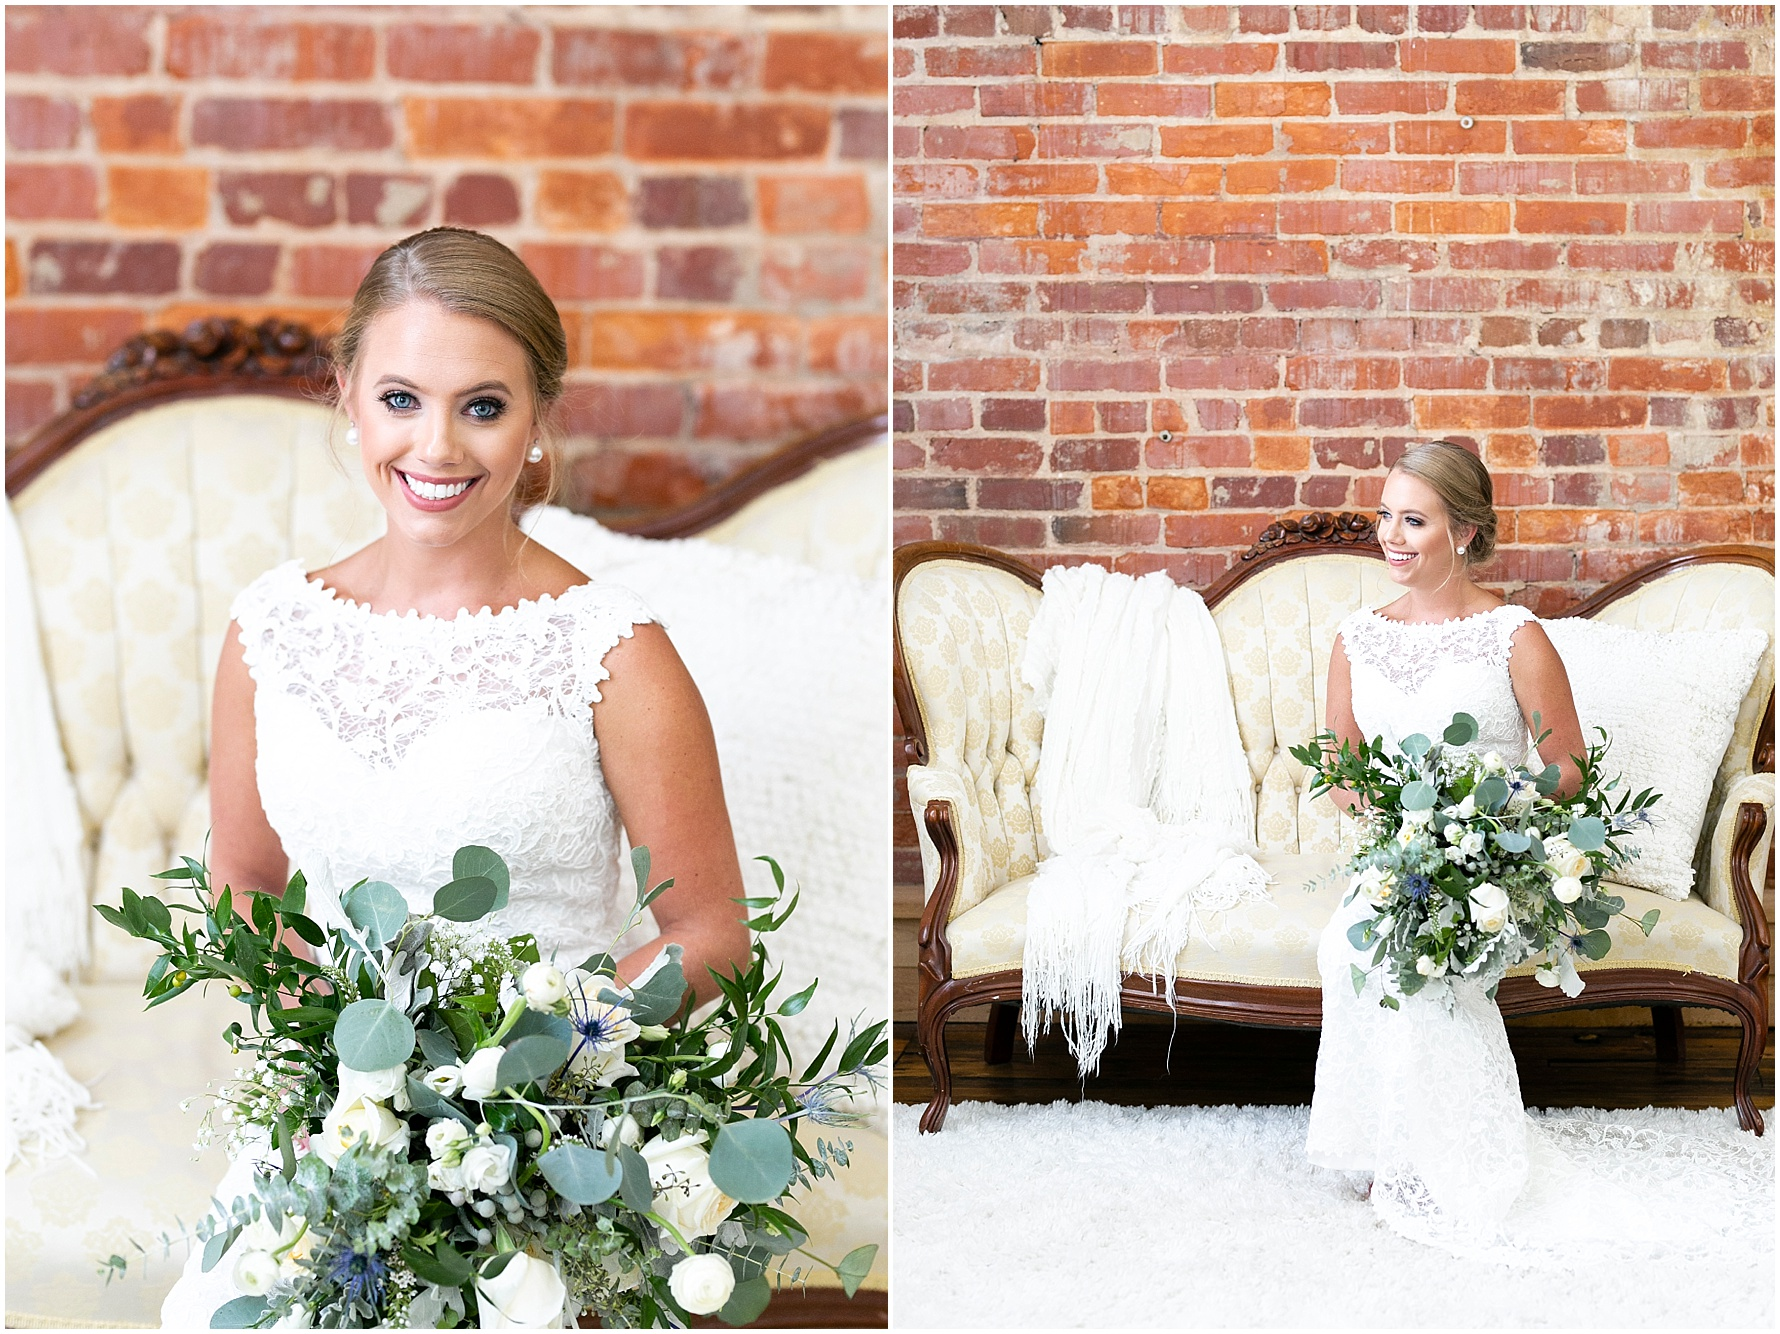 studio at wharf hill bridal portrait, Jessica Ryan photography, classic bride, southern bride,